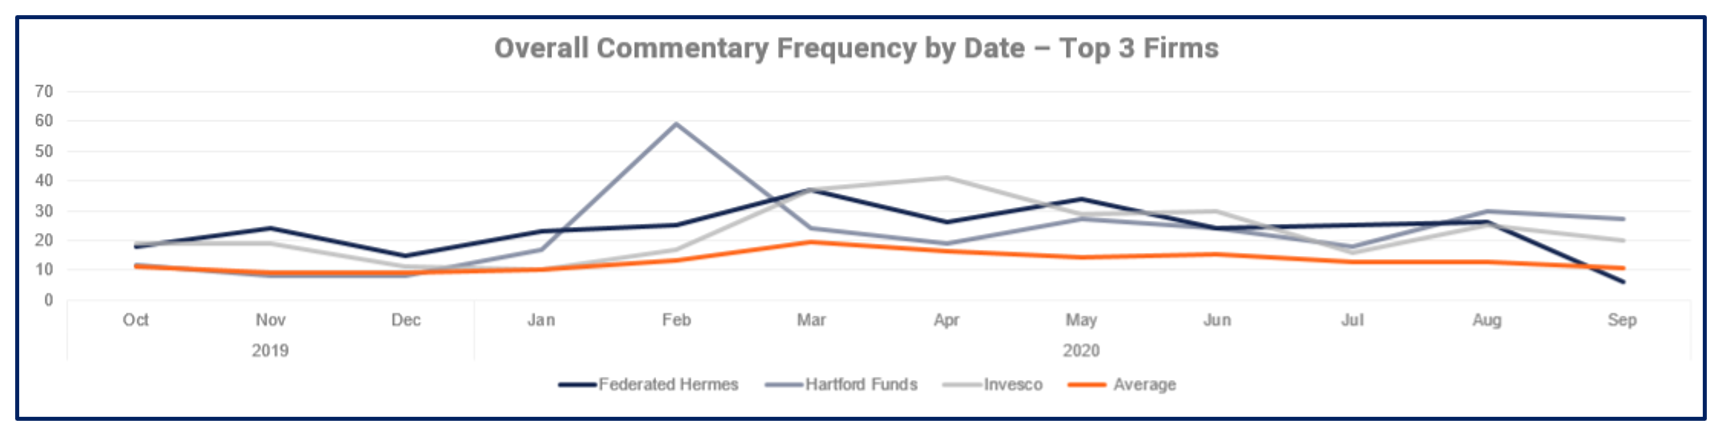 Thought Leadership Analysis Commentary Frequency by Firms